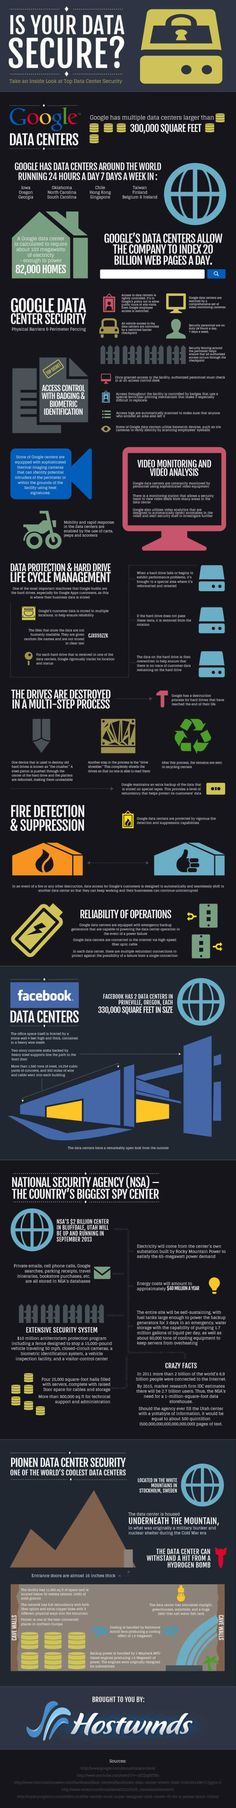 Is your data secure? Infographic | Brian Pennington